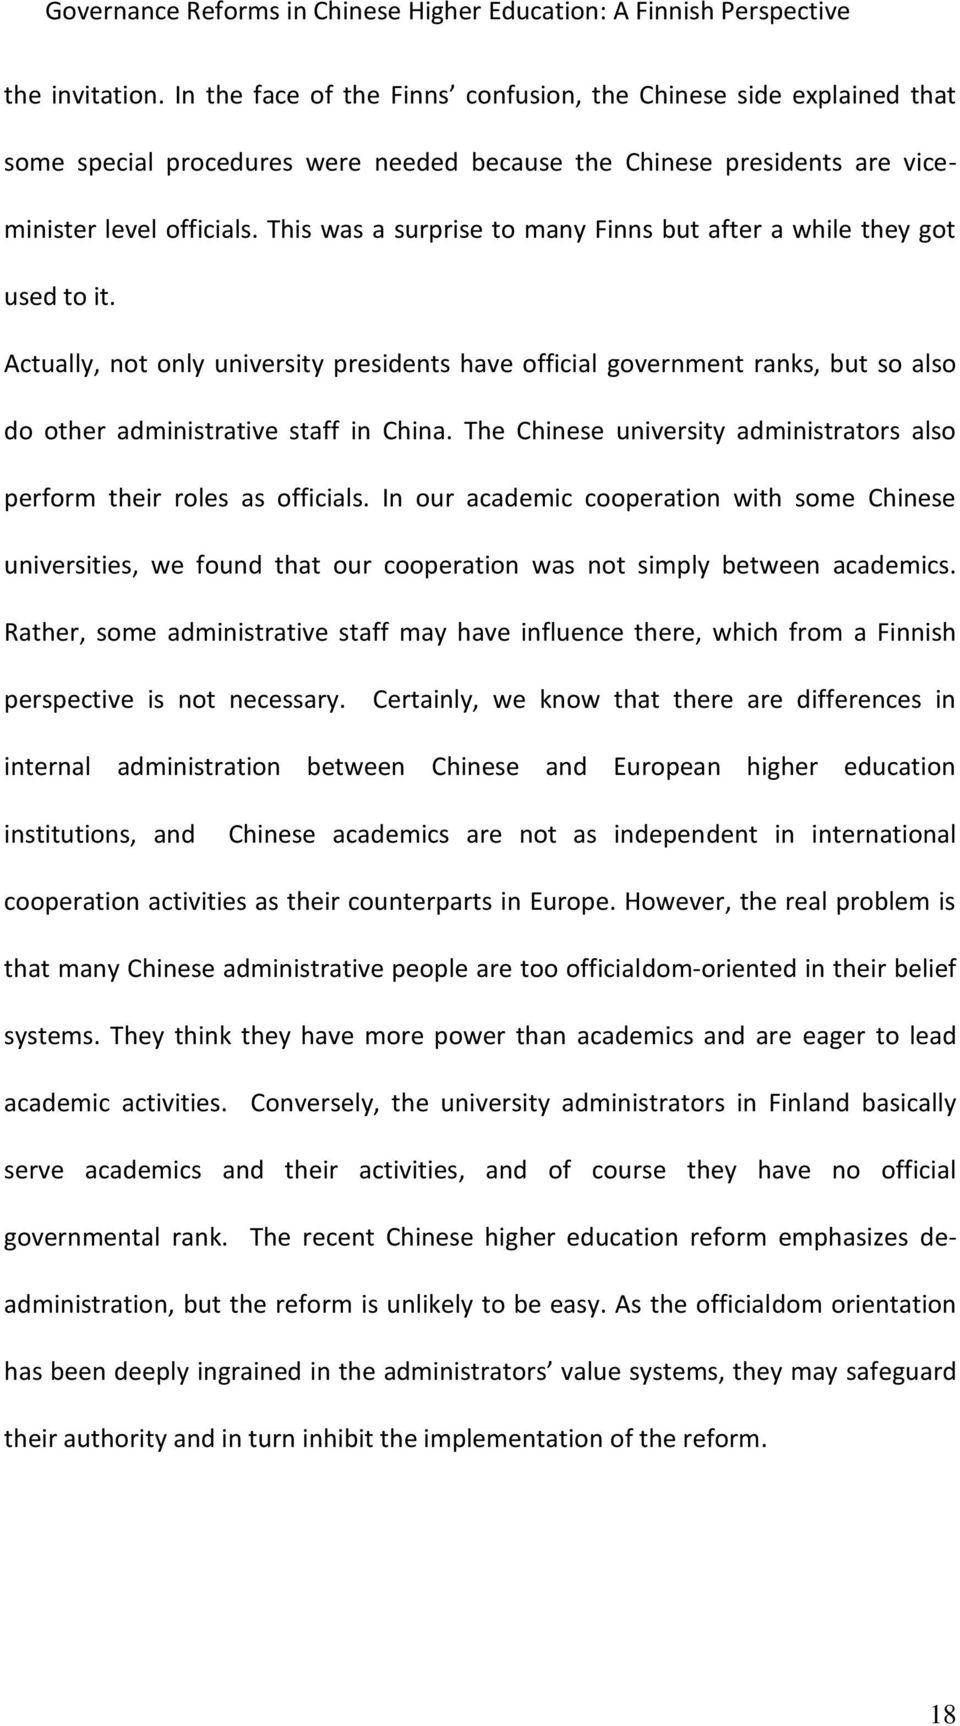 This was a surprise to many Finns but after a while they got used to it. Actually, not only university presidents have official government ranks, but so also do other administrative staff in China.